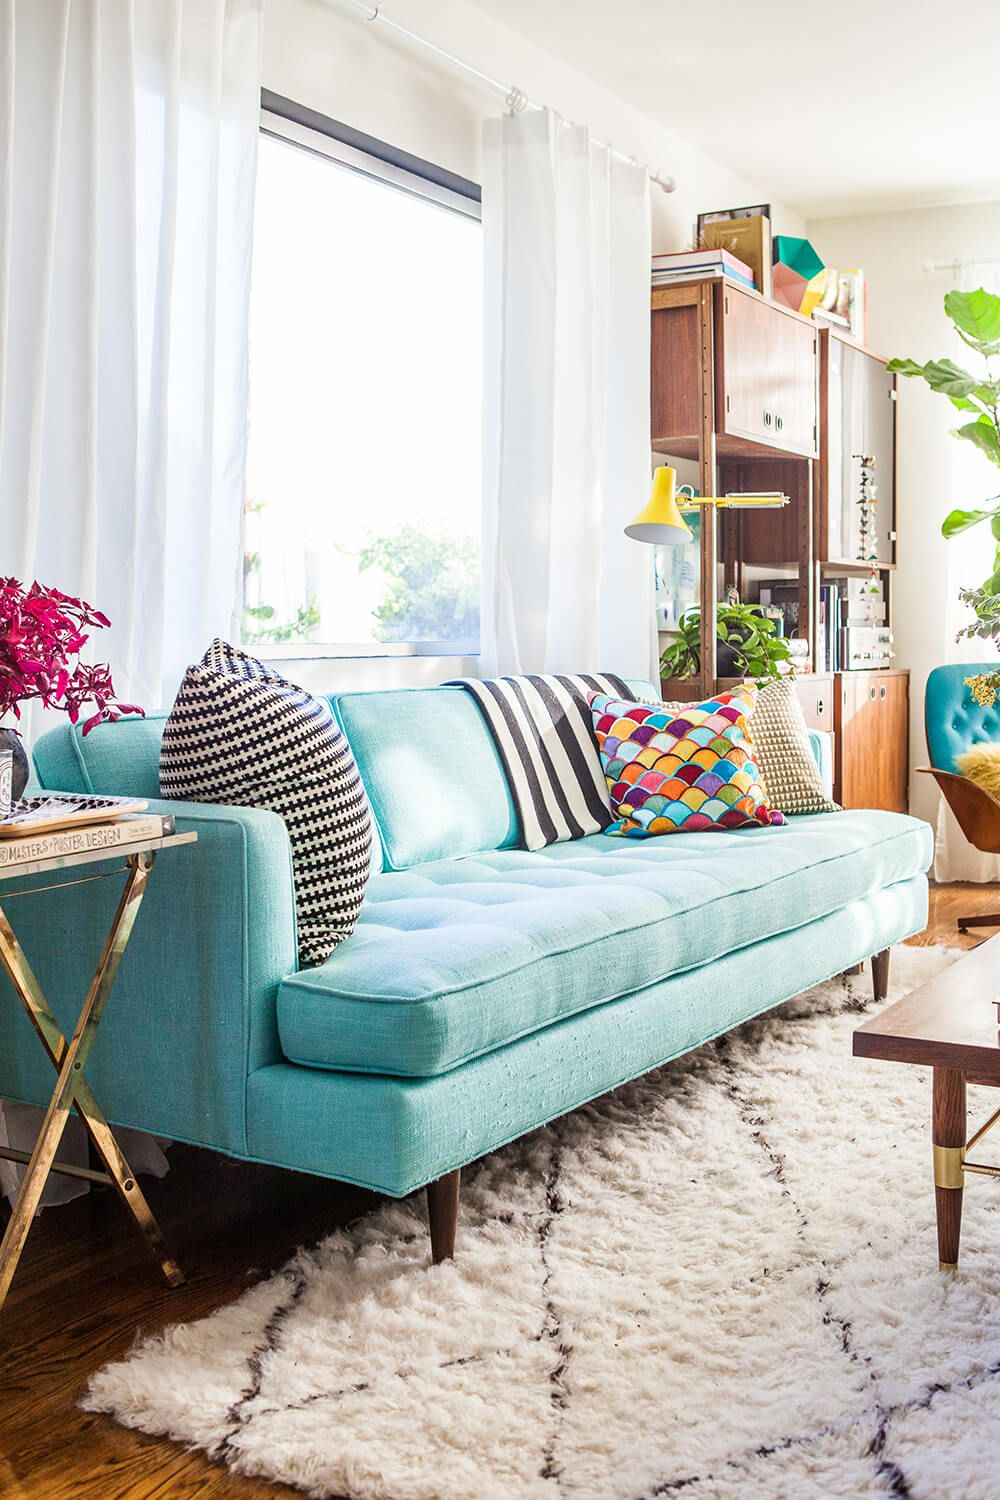 Living Room Sets Under 1000 Dollars 84 affordable amazing sofas under $1000 (emily henderson) | living